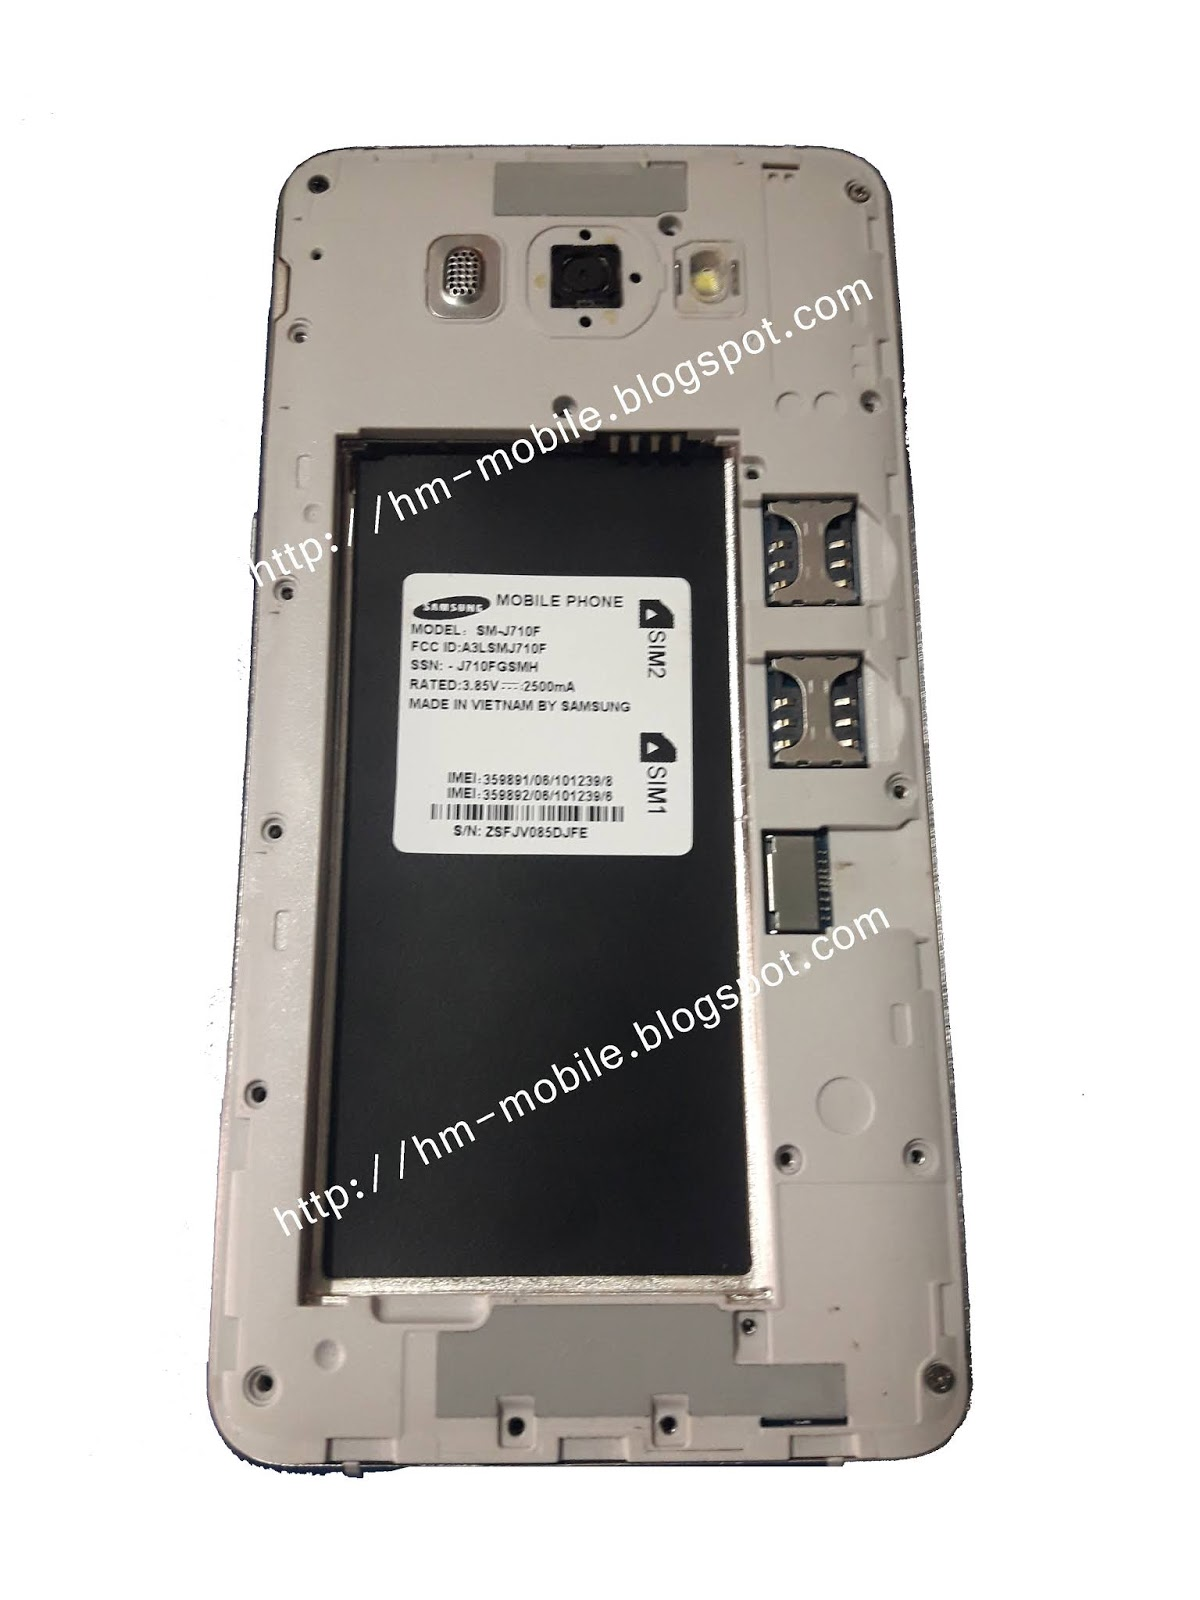 Samsung Copy J710f Flash File MT6572 Cm2 Read Firmware without